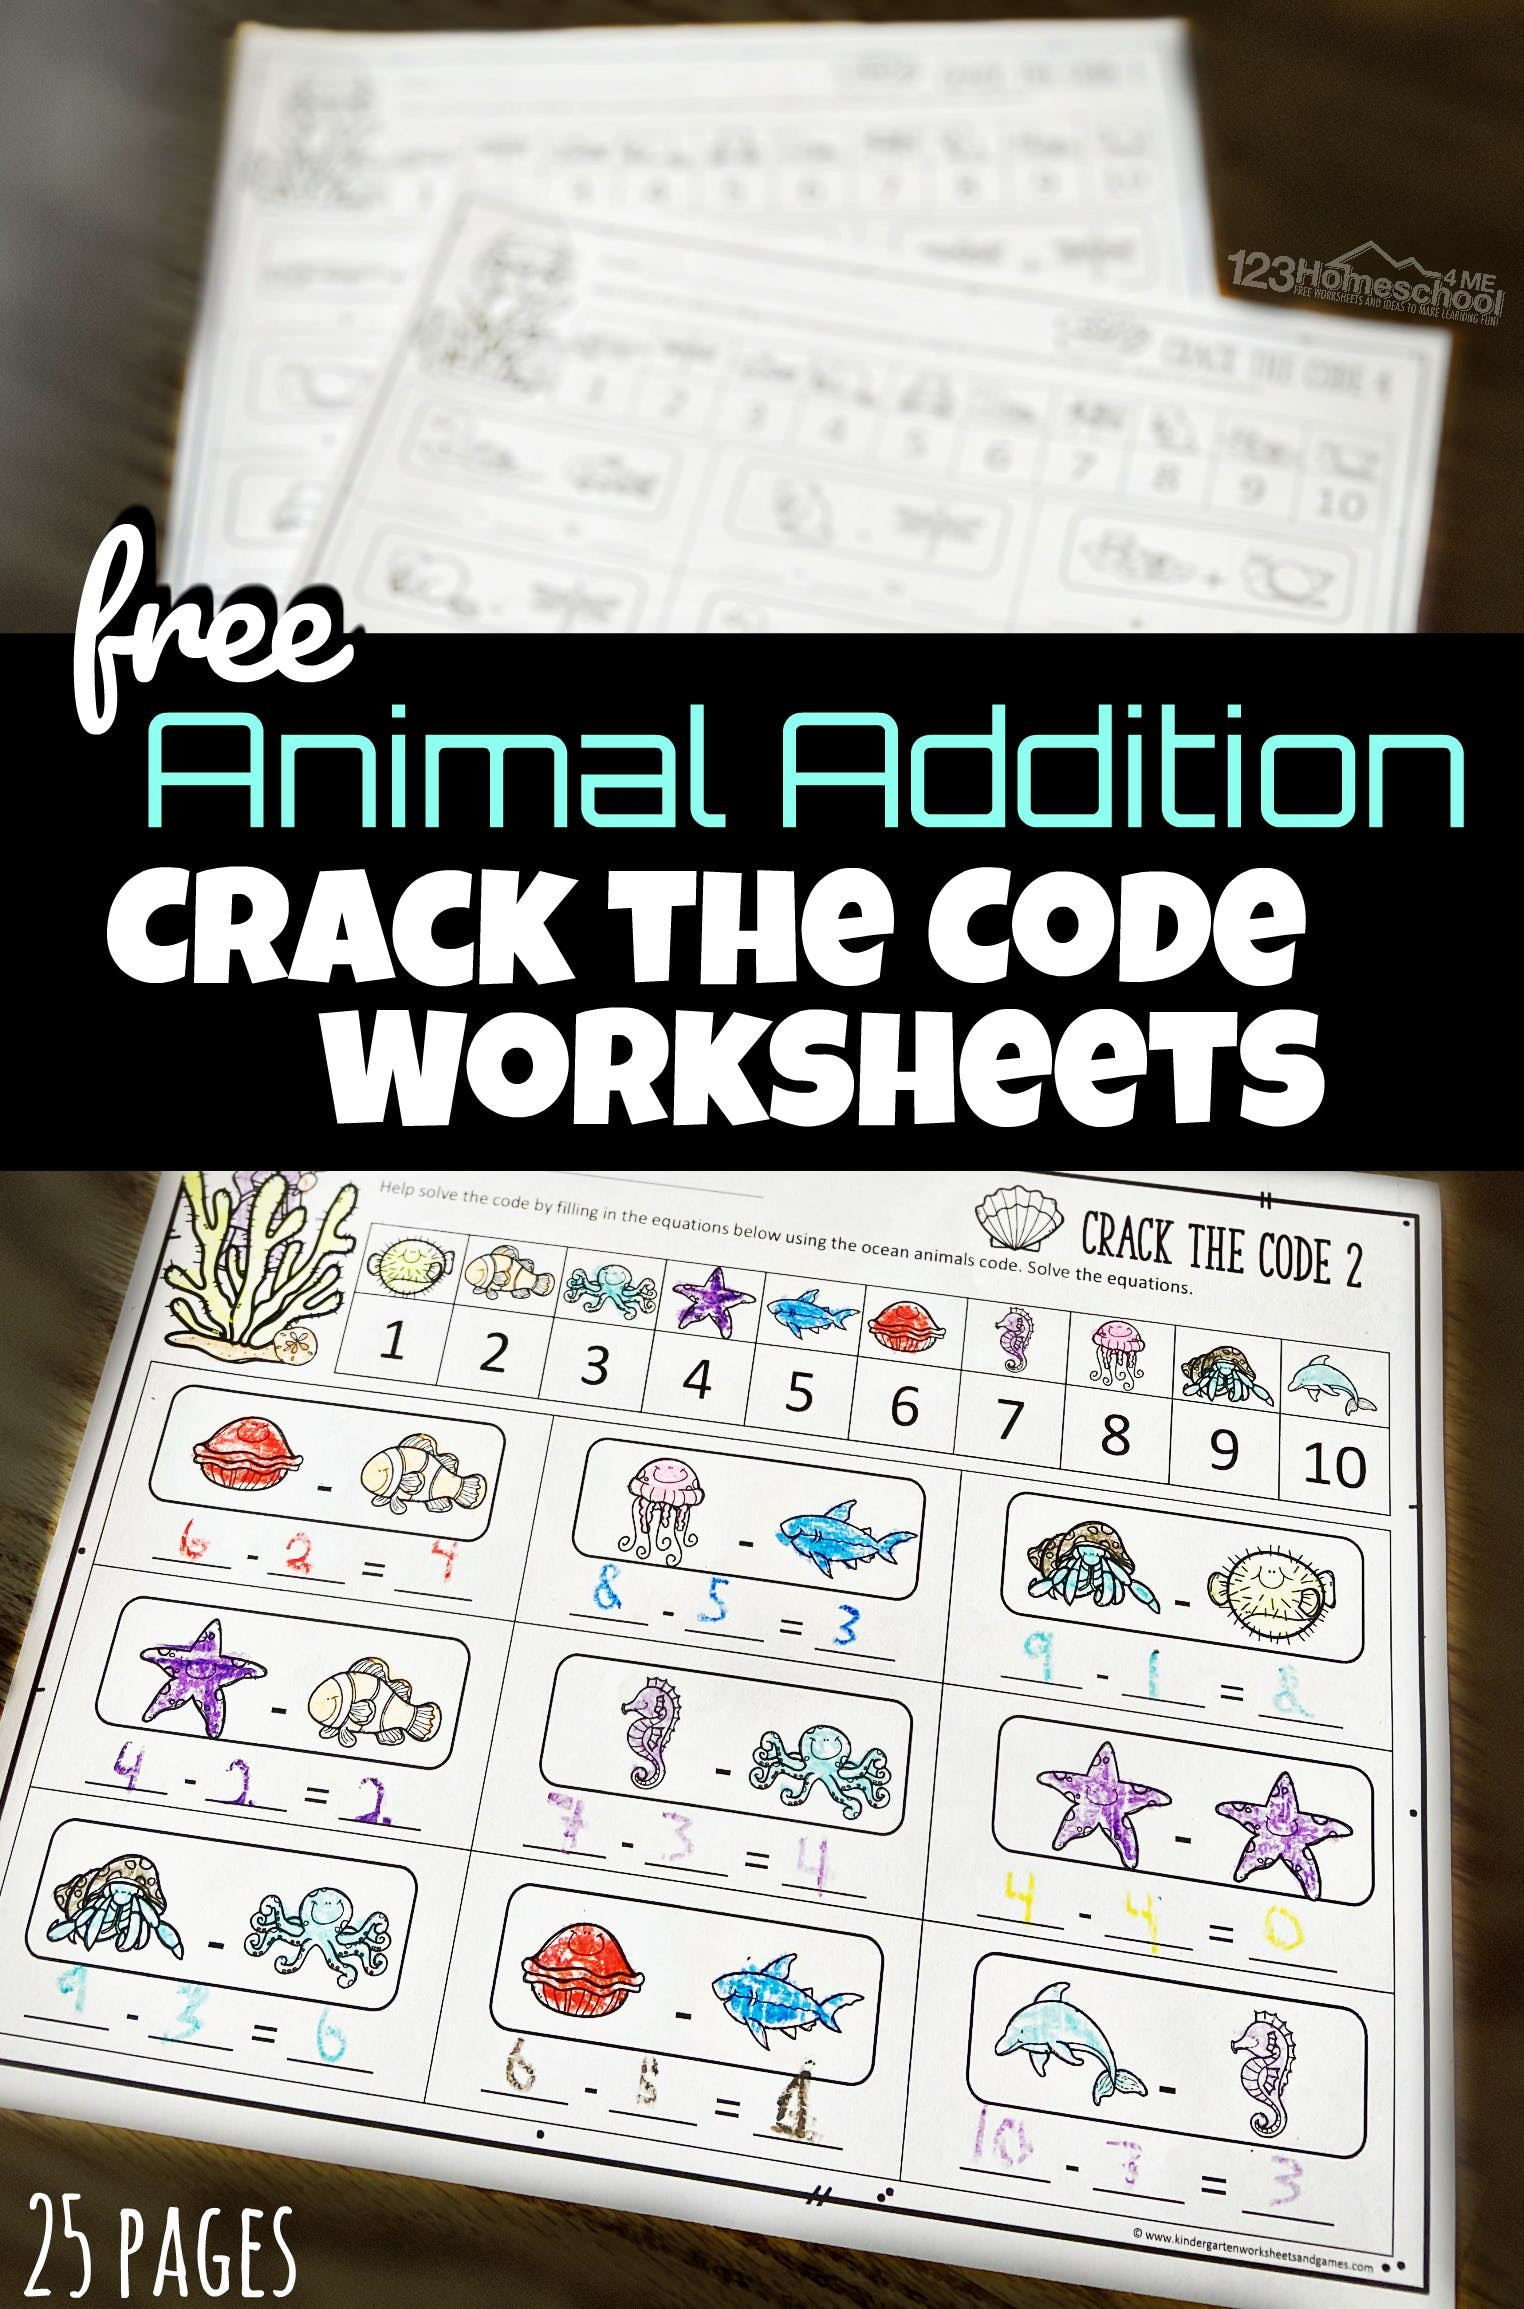 Cracking the Code Math Worksheets Crack the Code Math Worksheets